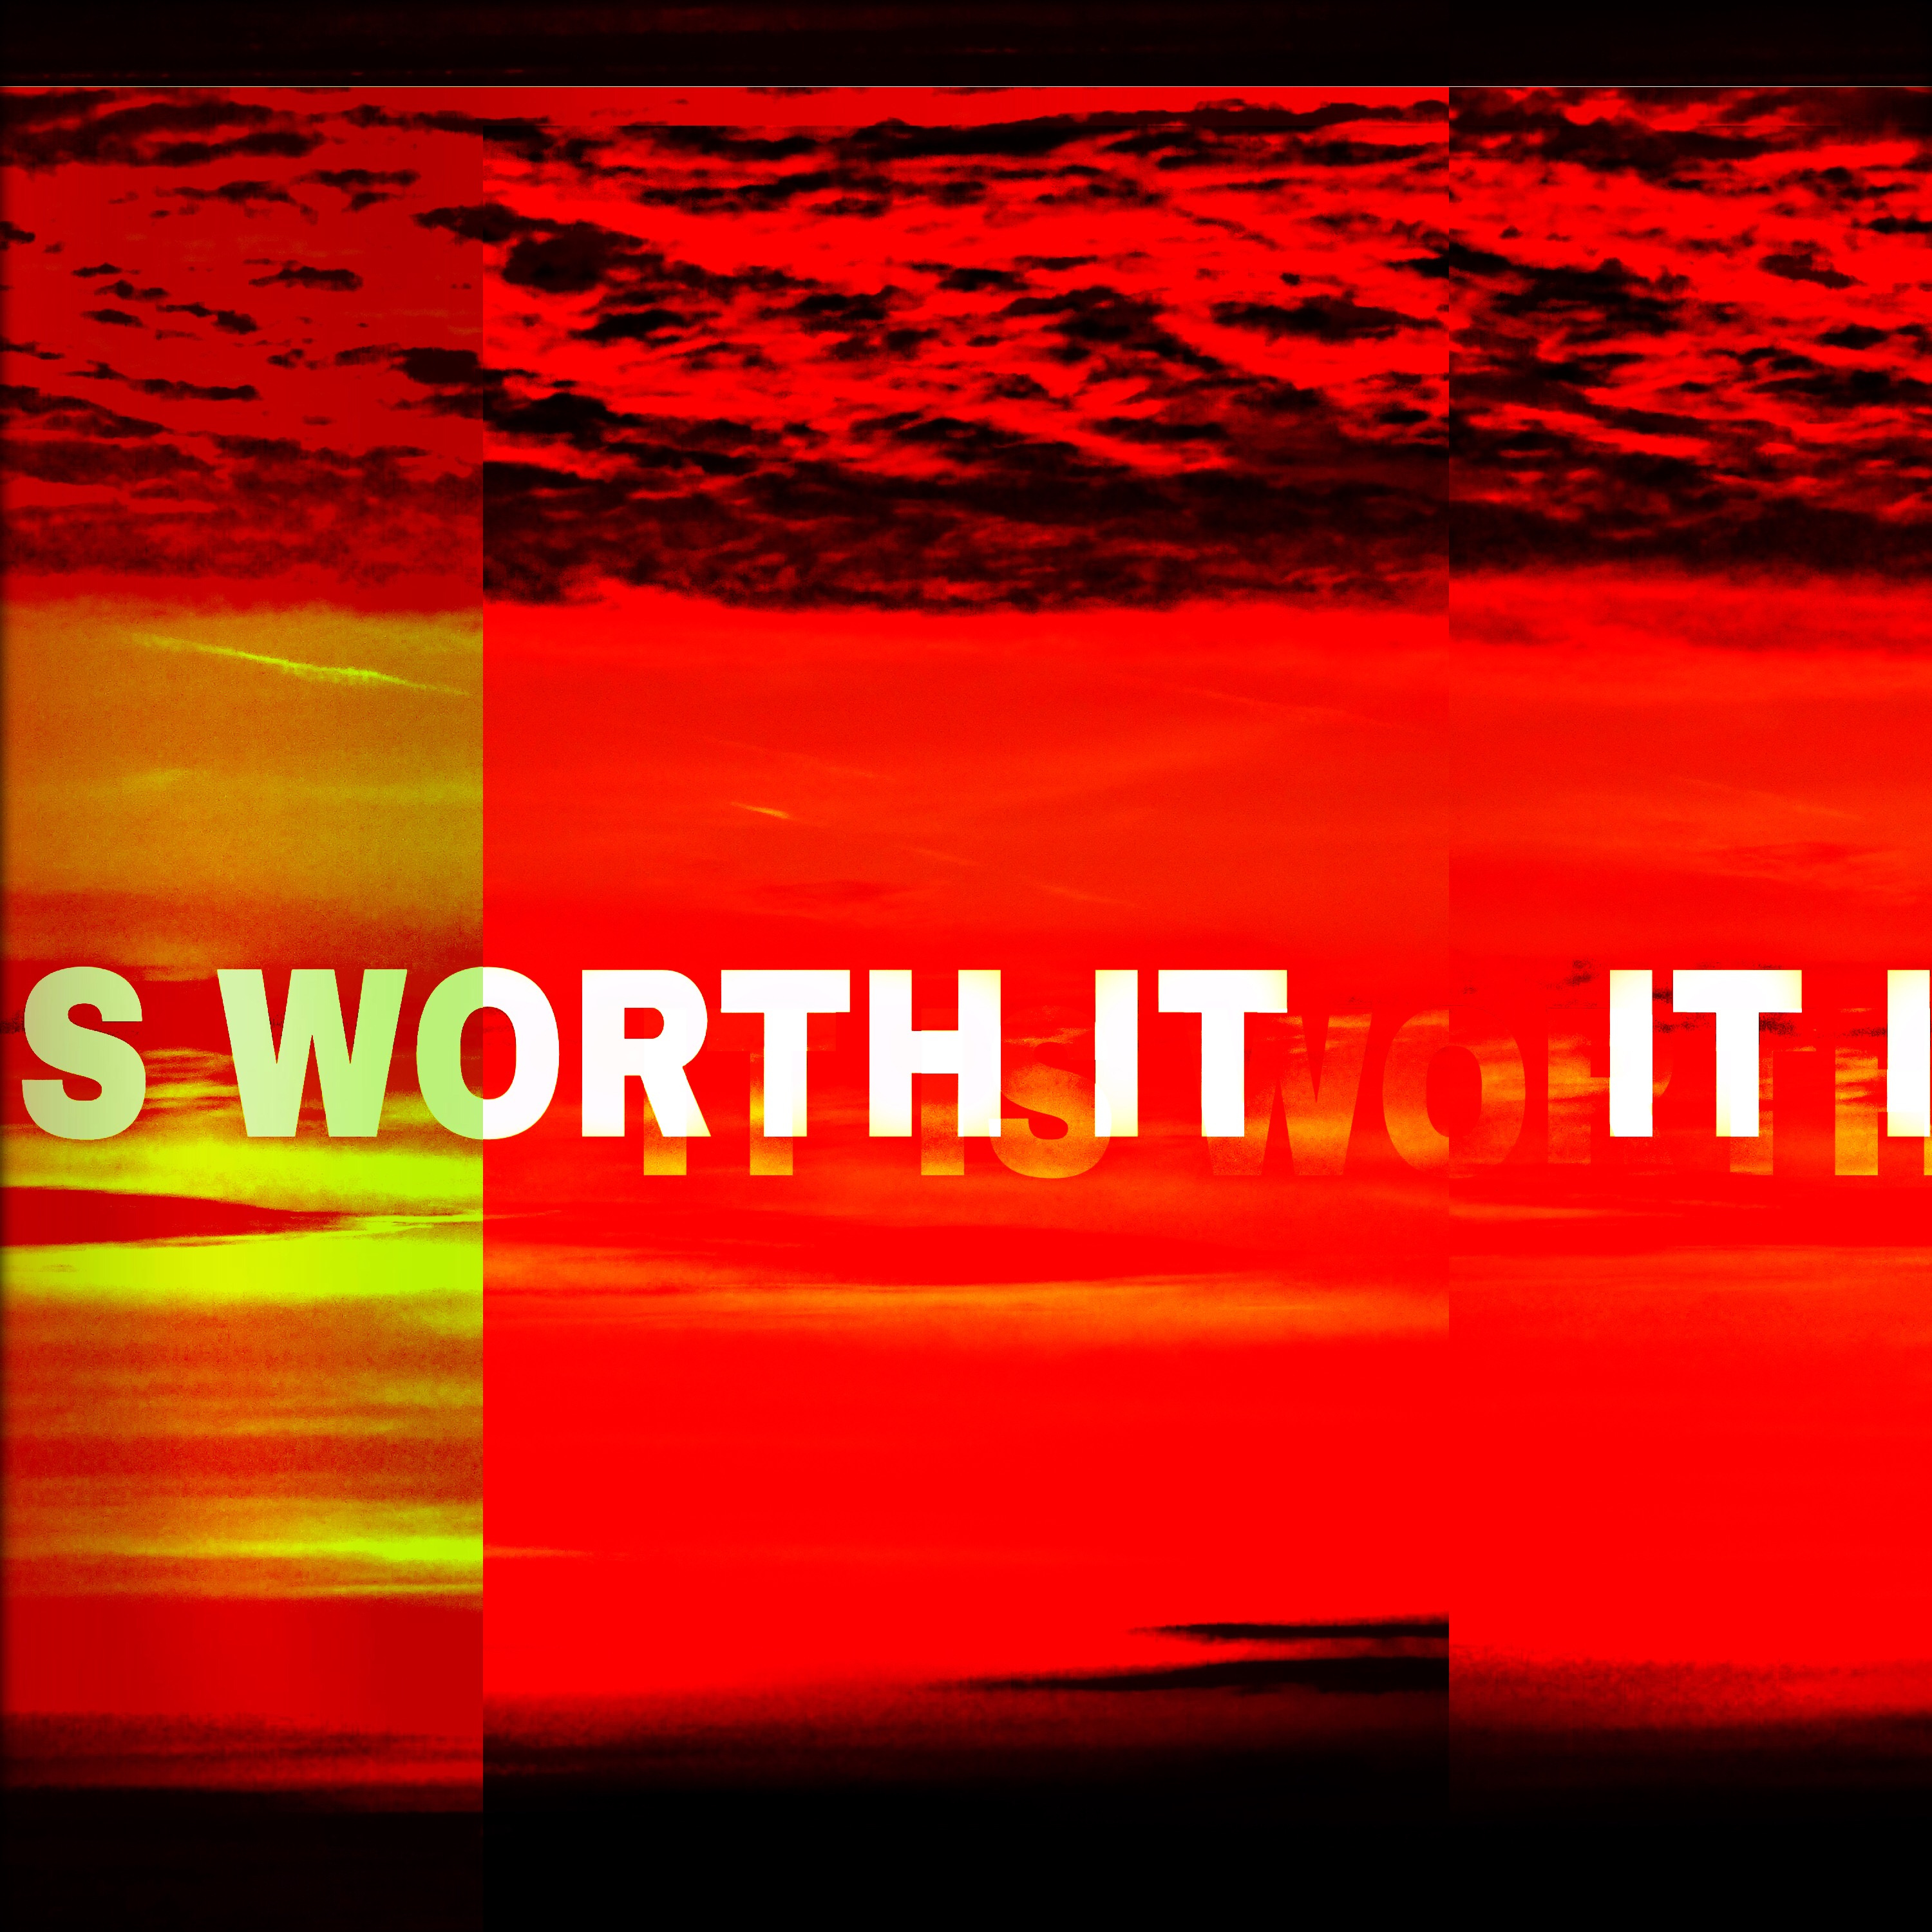 It is Worth it: Motivation to start down your path.